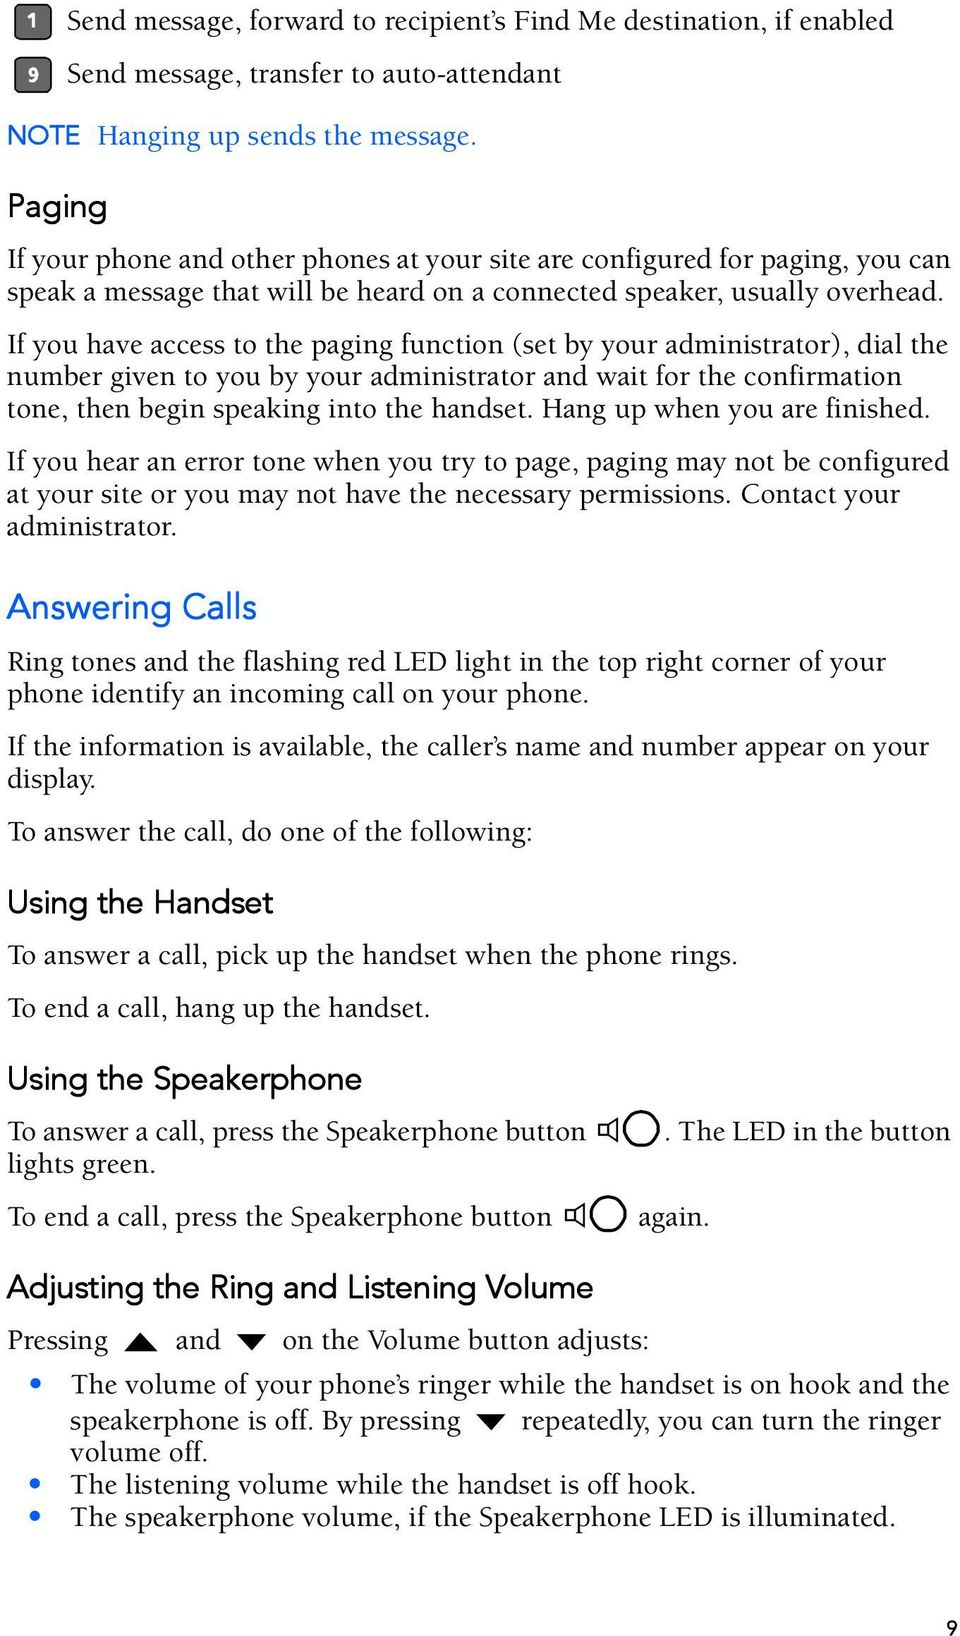 If you have access to the paging function (set by your administrator), dial the number given to you by your administrator and wait for the confirmation tone, then begin speaking into the handset.